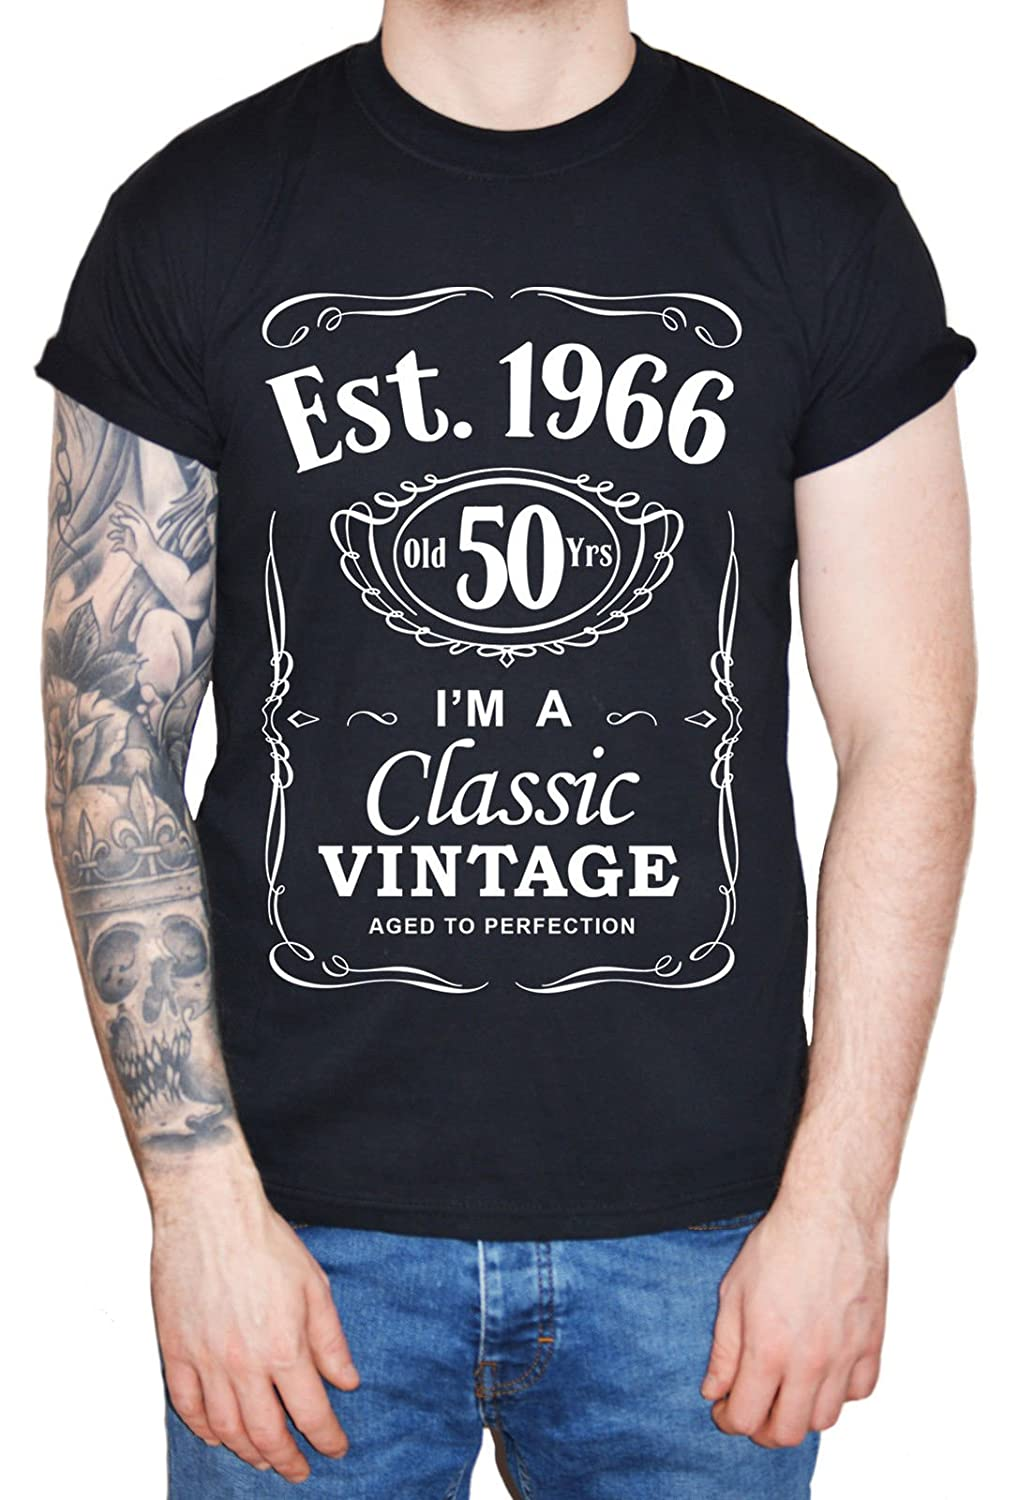 DanyTech Mens 50th Birthday Present Men T Shirt Est 1966 Vintage Man Fiftieth 50 Years Funny Gift Amazoncouk Clothing